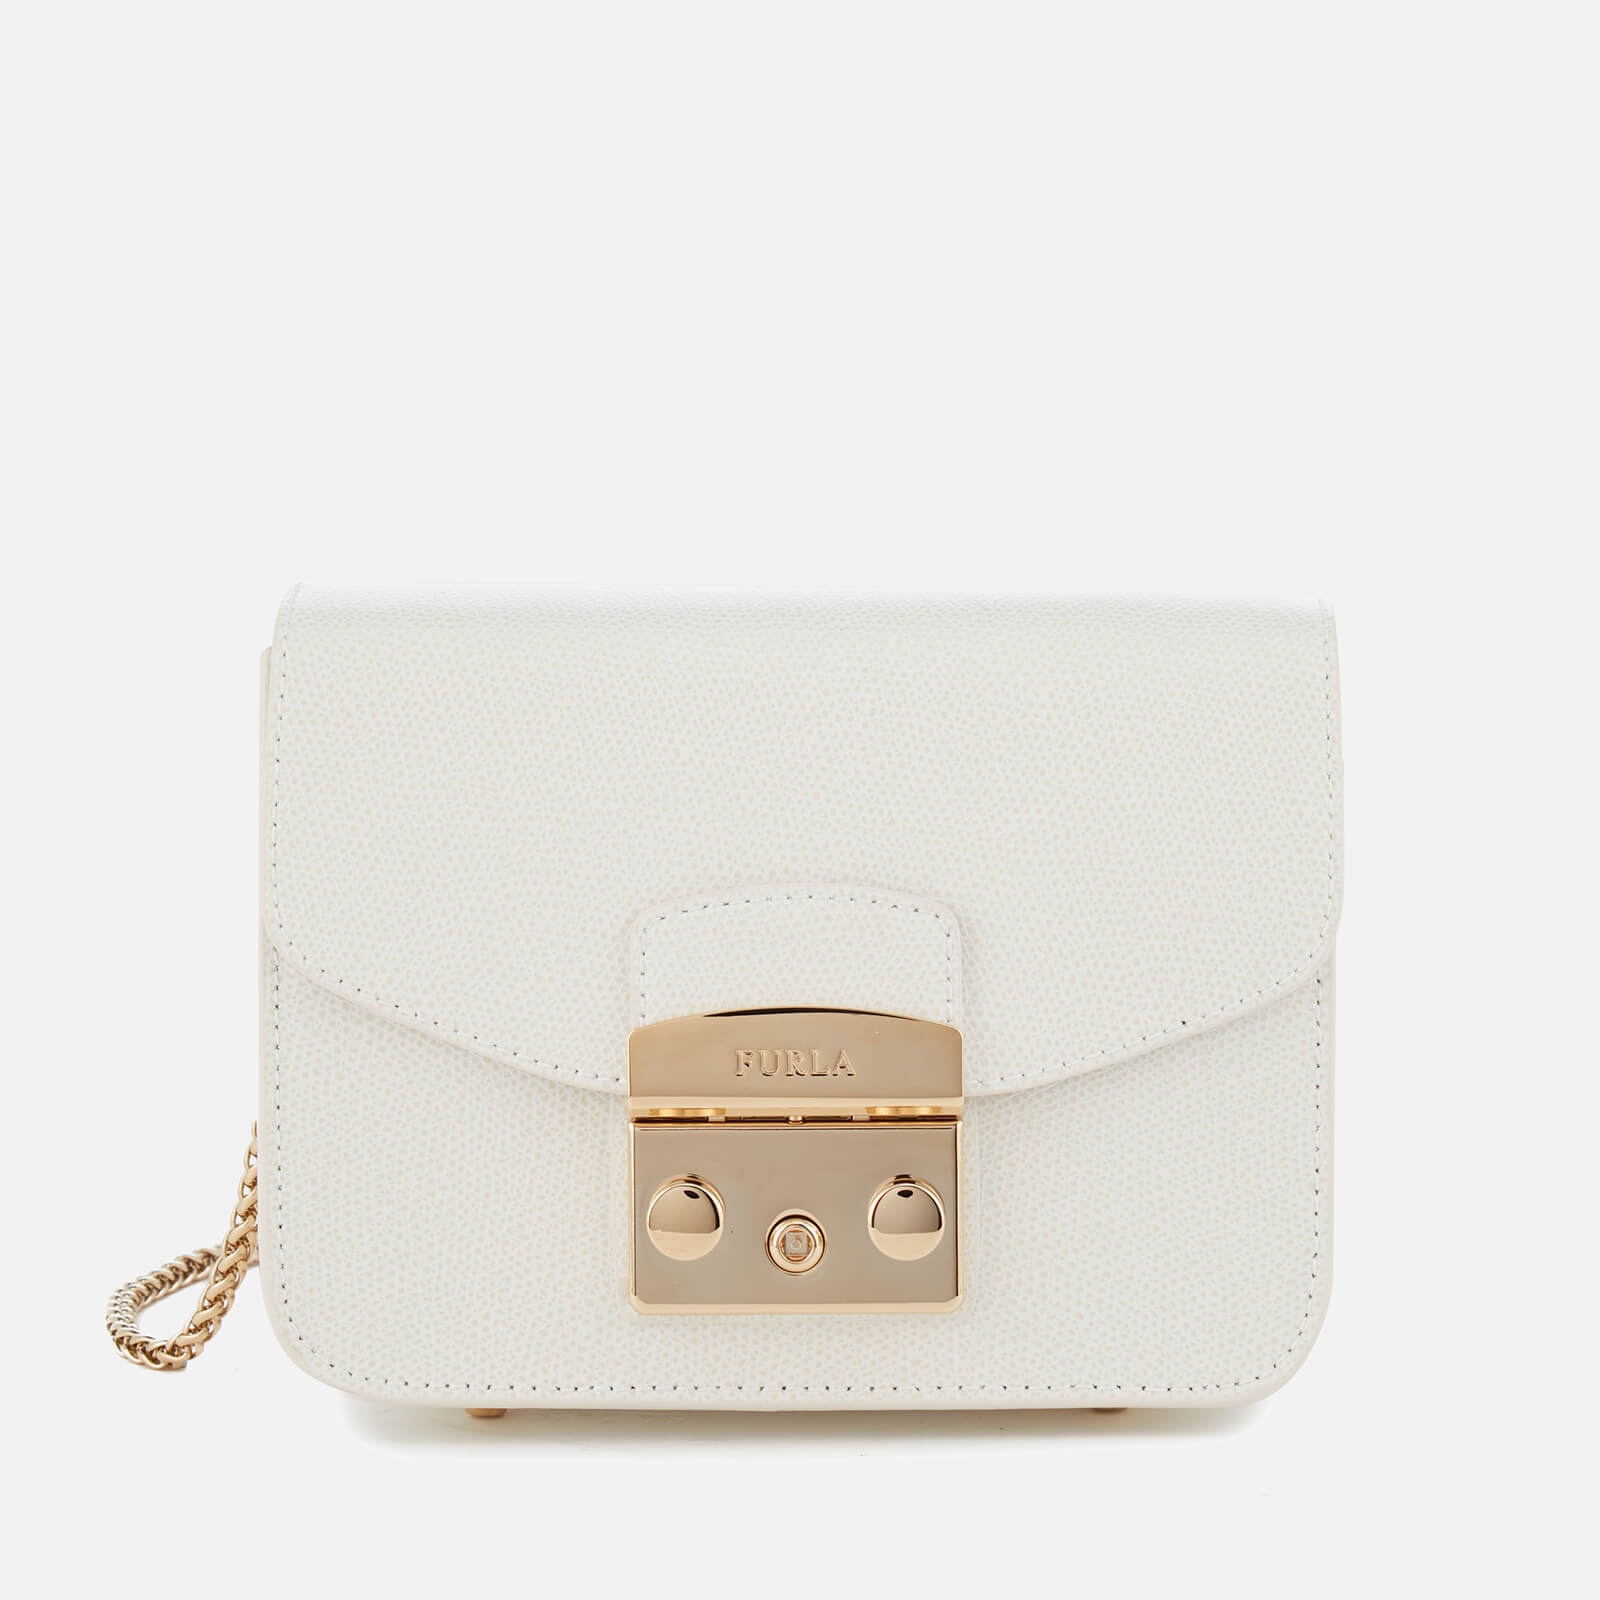 Furla Women's Metropolis Mini Cross Body Bag - White